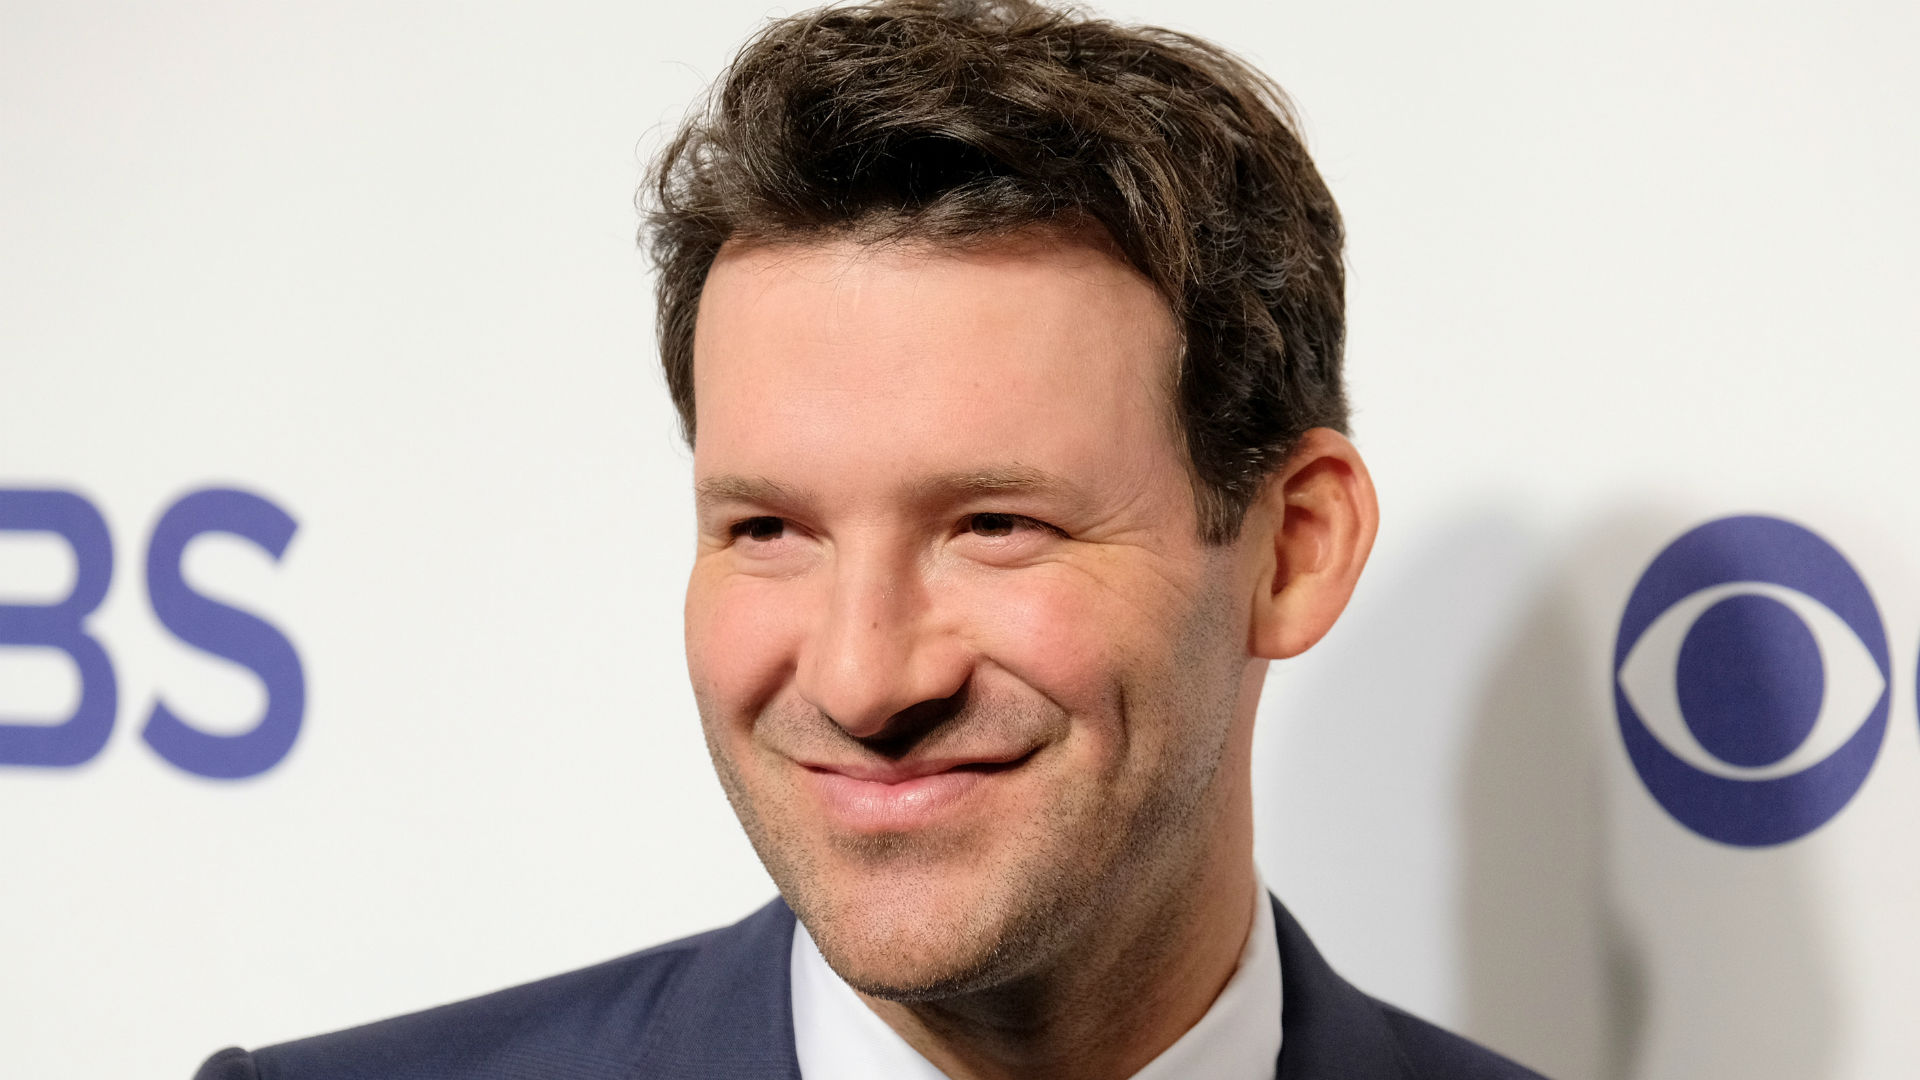 NFL playoffs 2019: Tony Romo ignites Twitter with fortune-telling from the booth